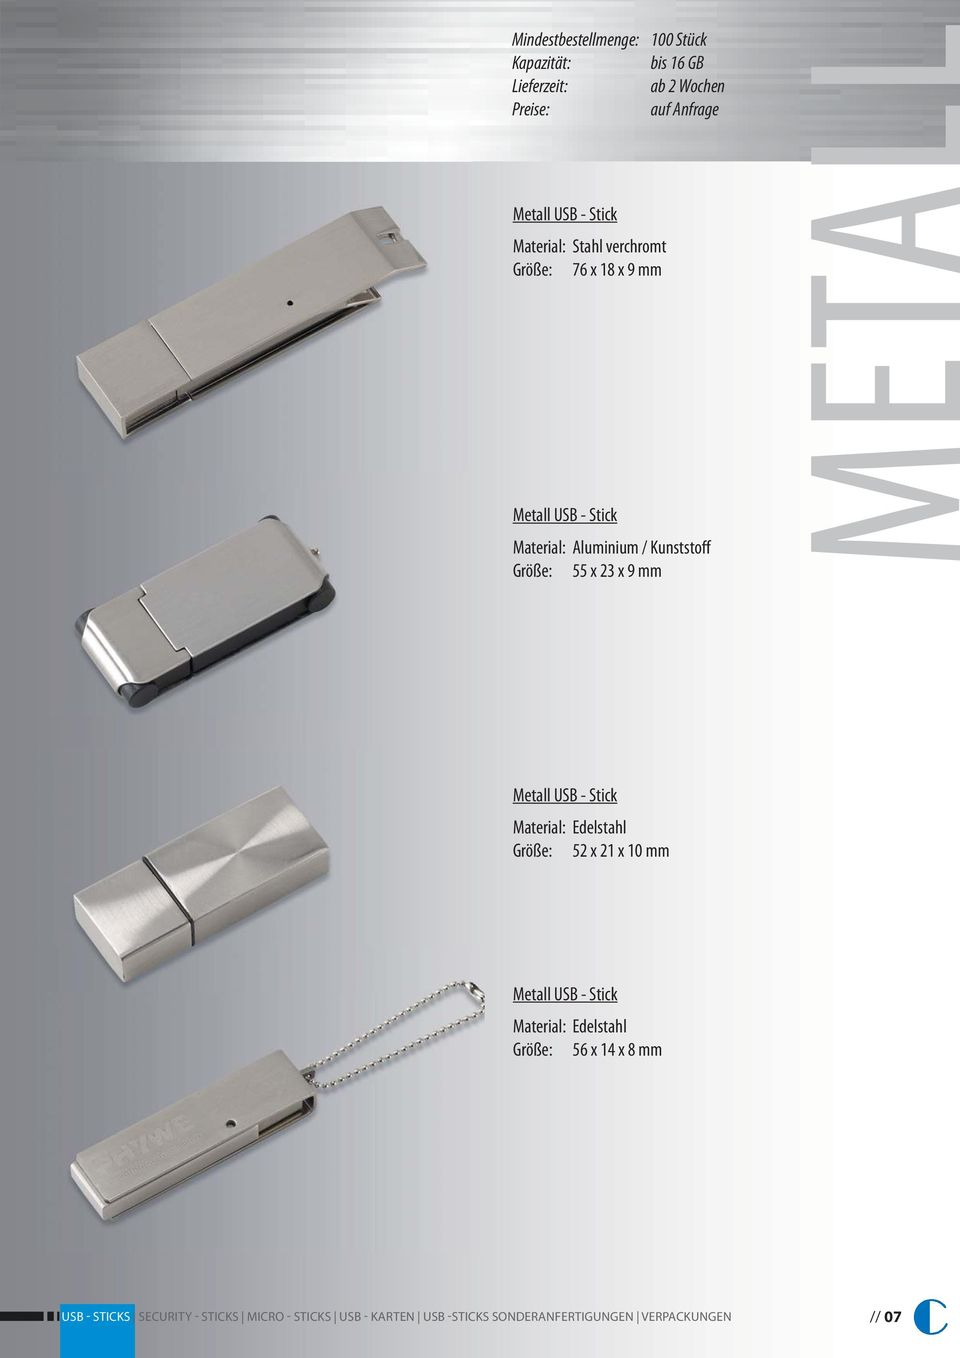 Metall USB - Stick Größe: 55 x 23 x 9 mm METALL Metall USB - Stick Material: